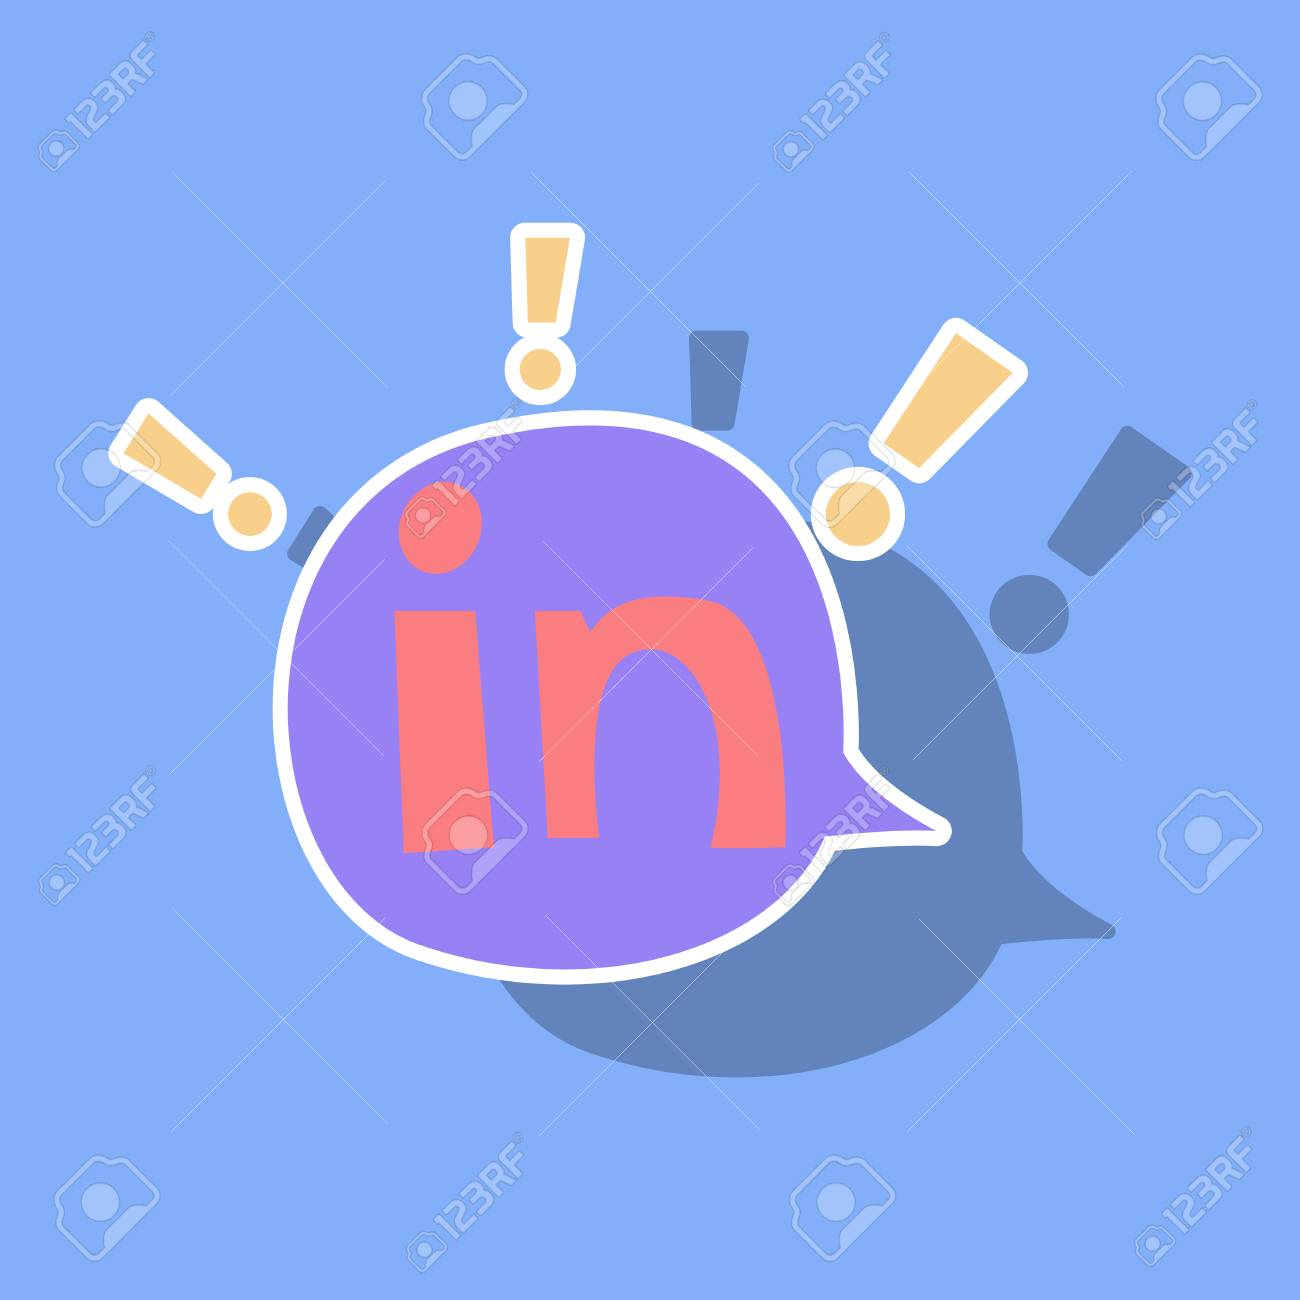 sticker linkedin color icon glossy app icon logo vector royalty